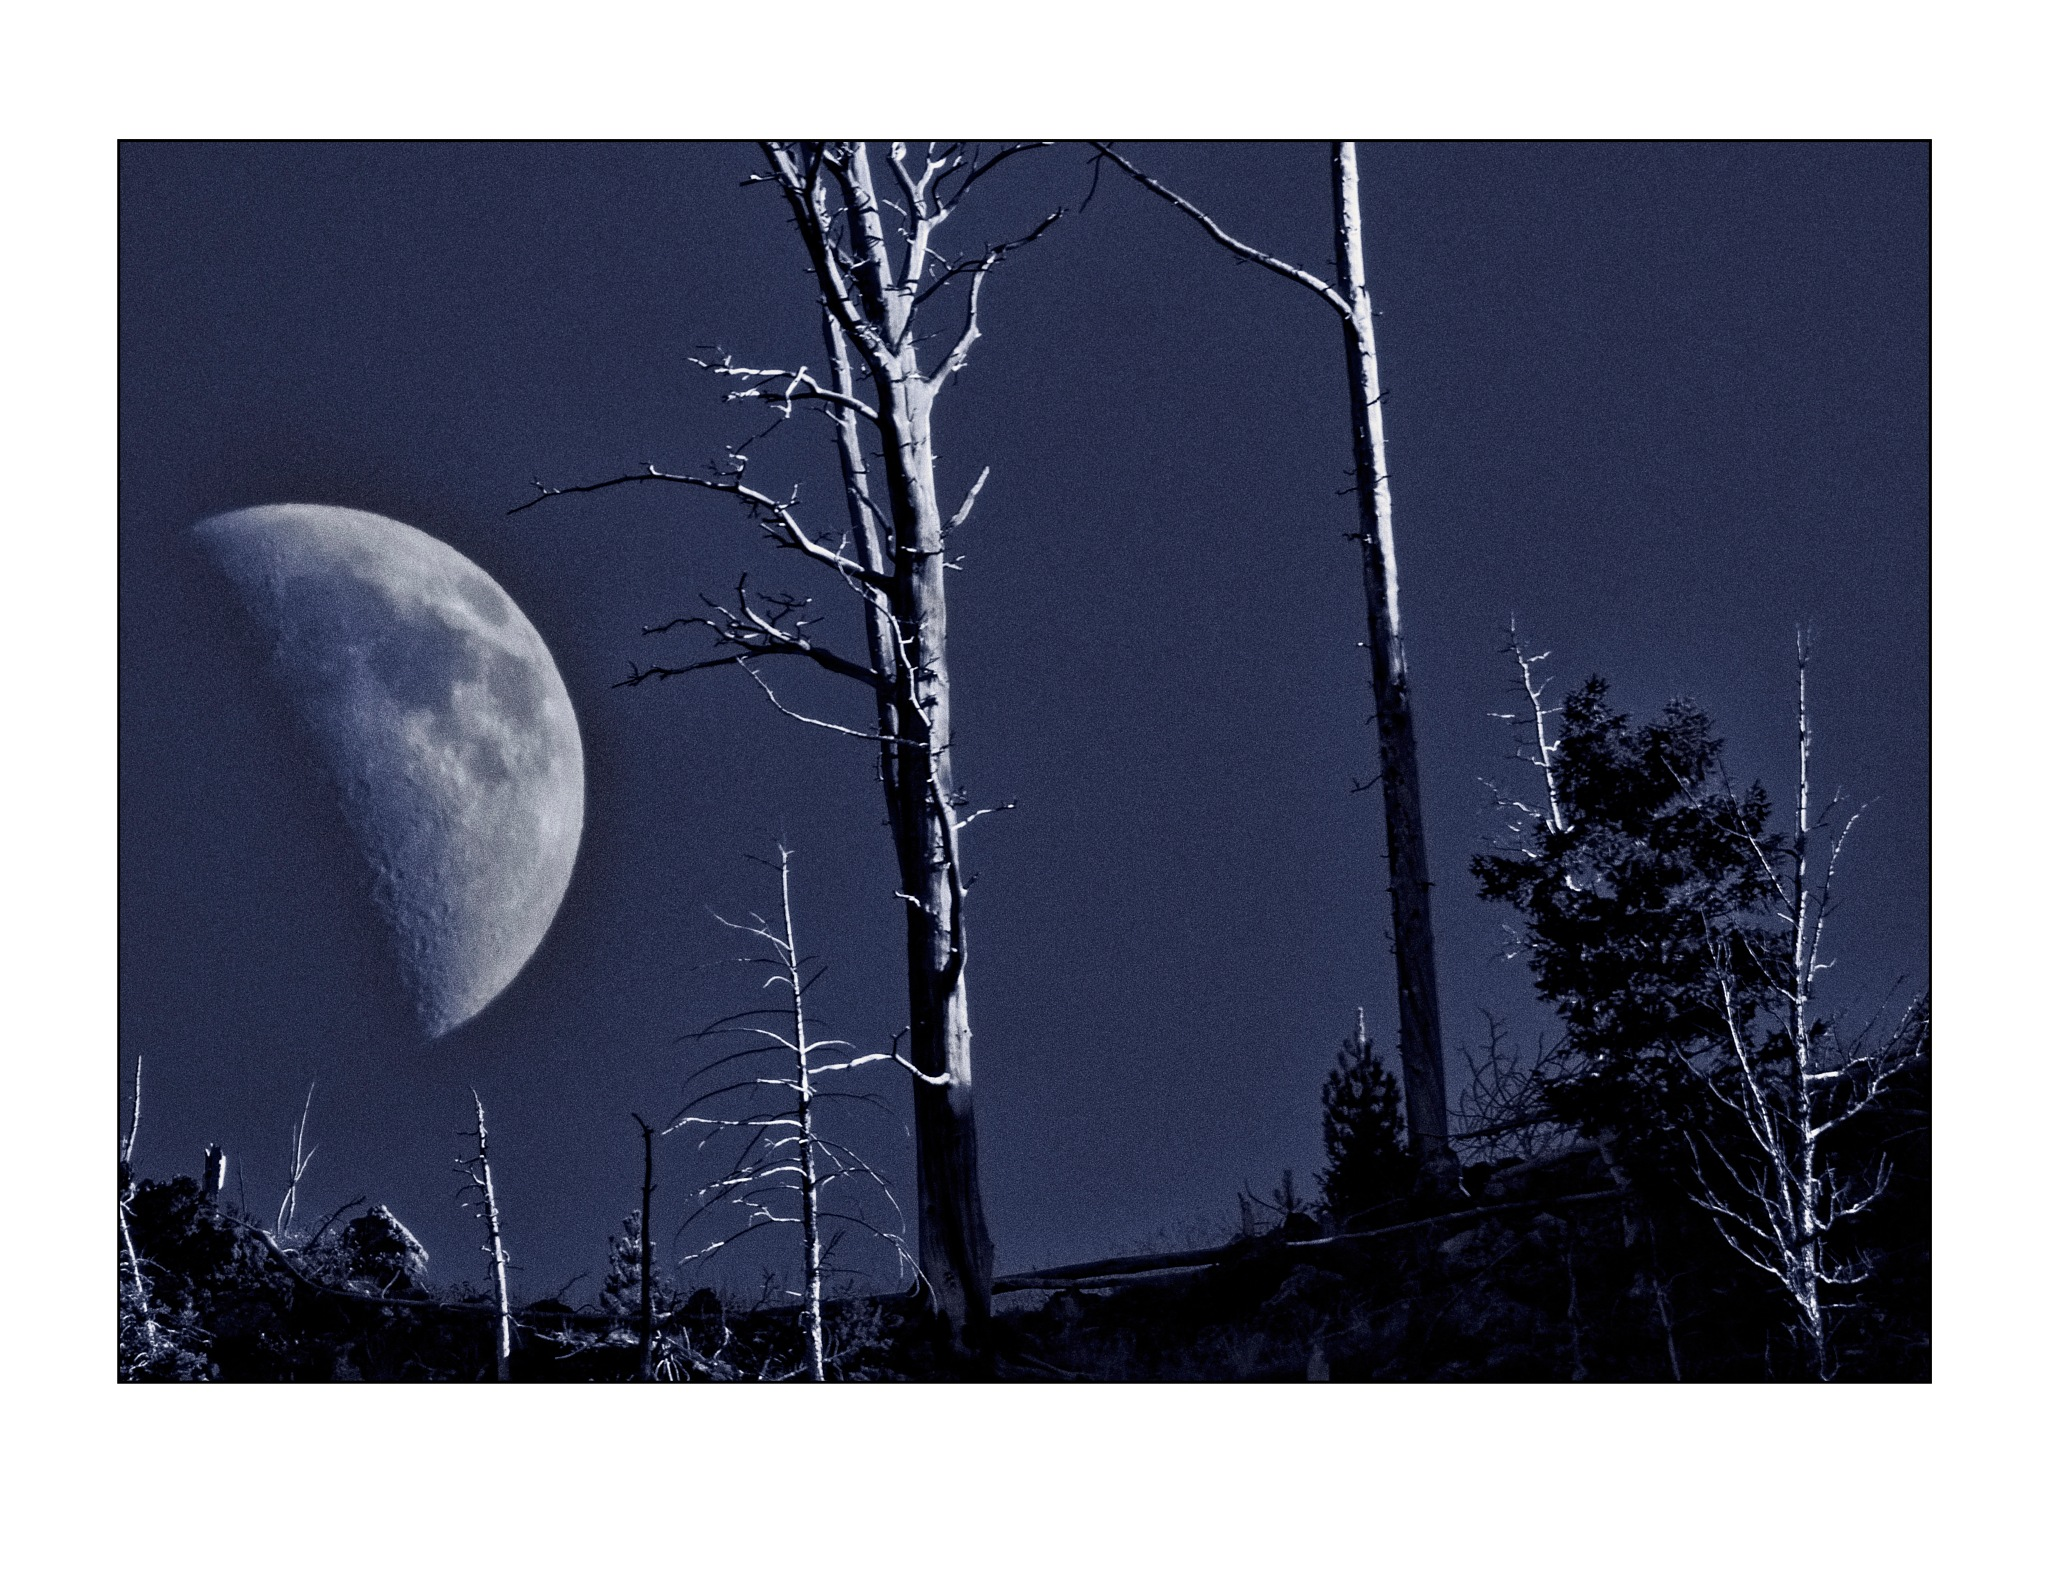 Moonrise over Montana by jhulton